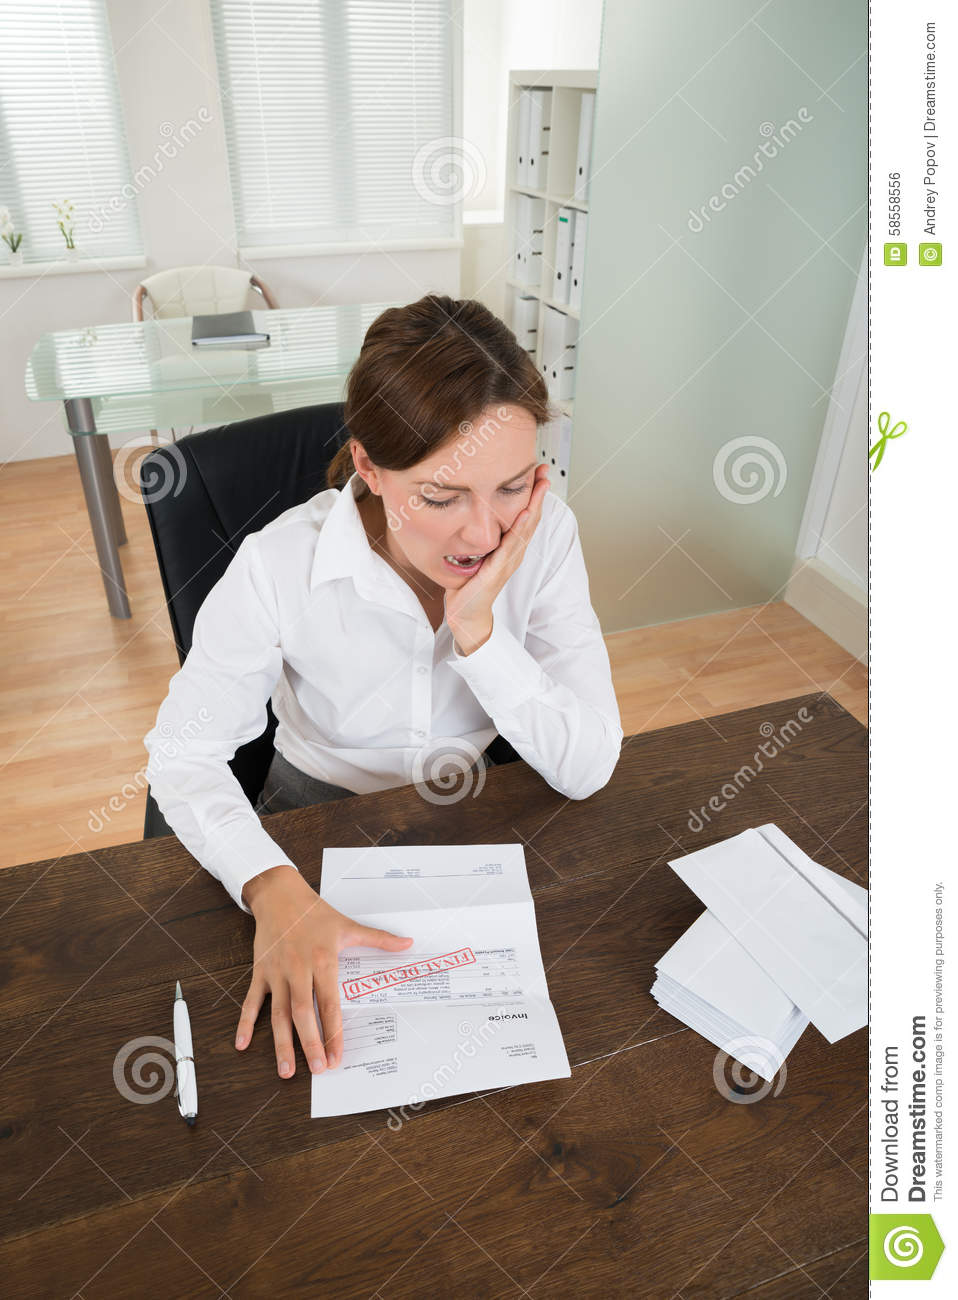 Businesswoman With Document In Office Stock Photo - Image ...